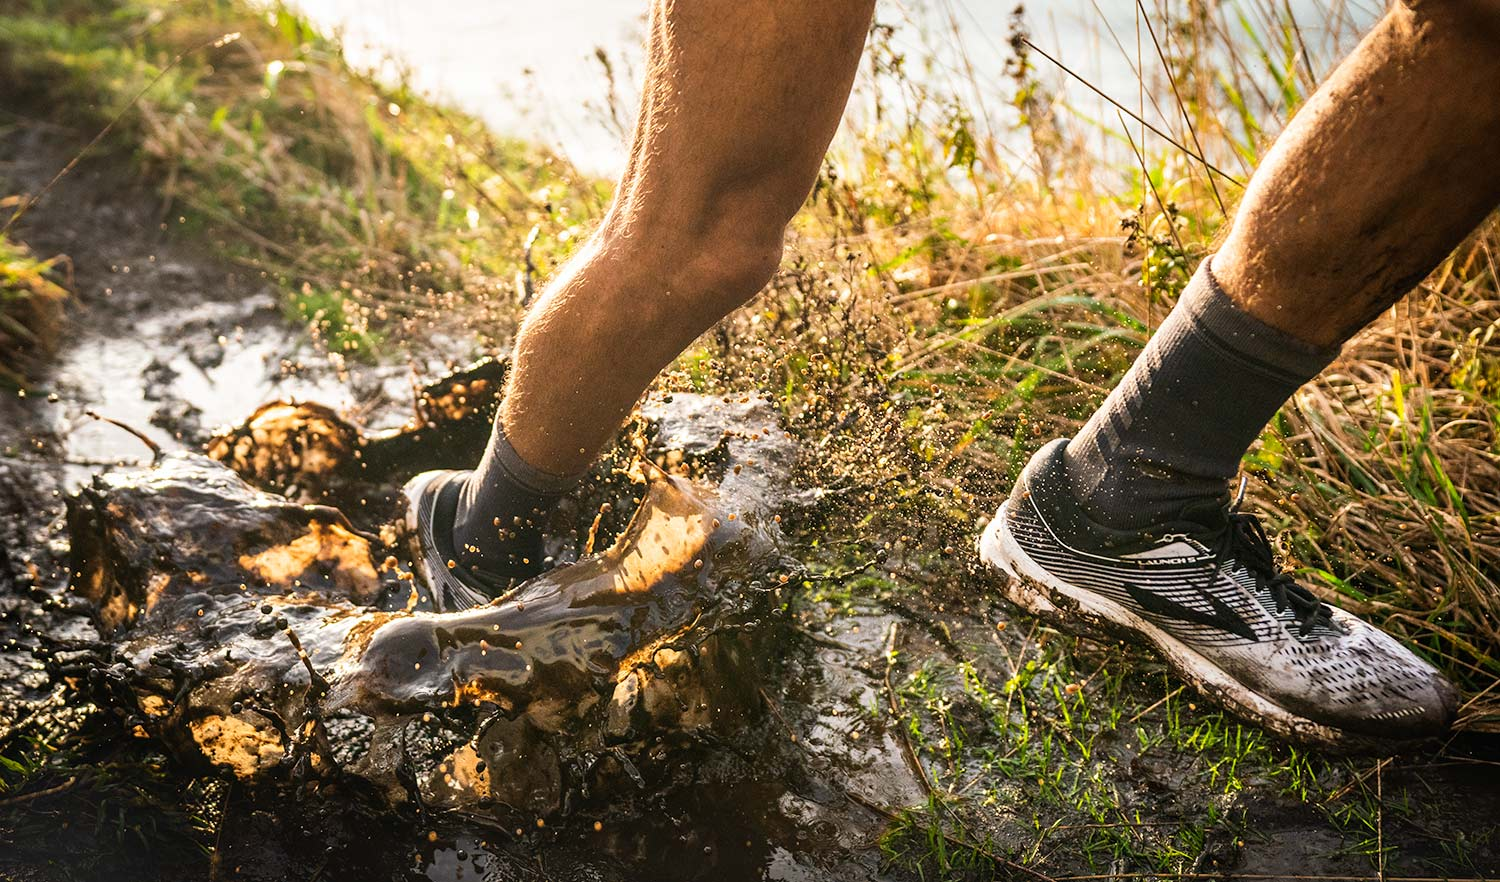 Lightweight Waterproof Socks for muddy trail running